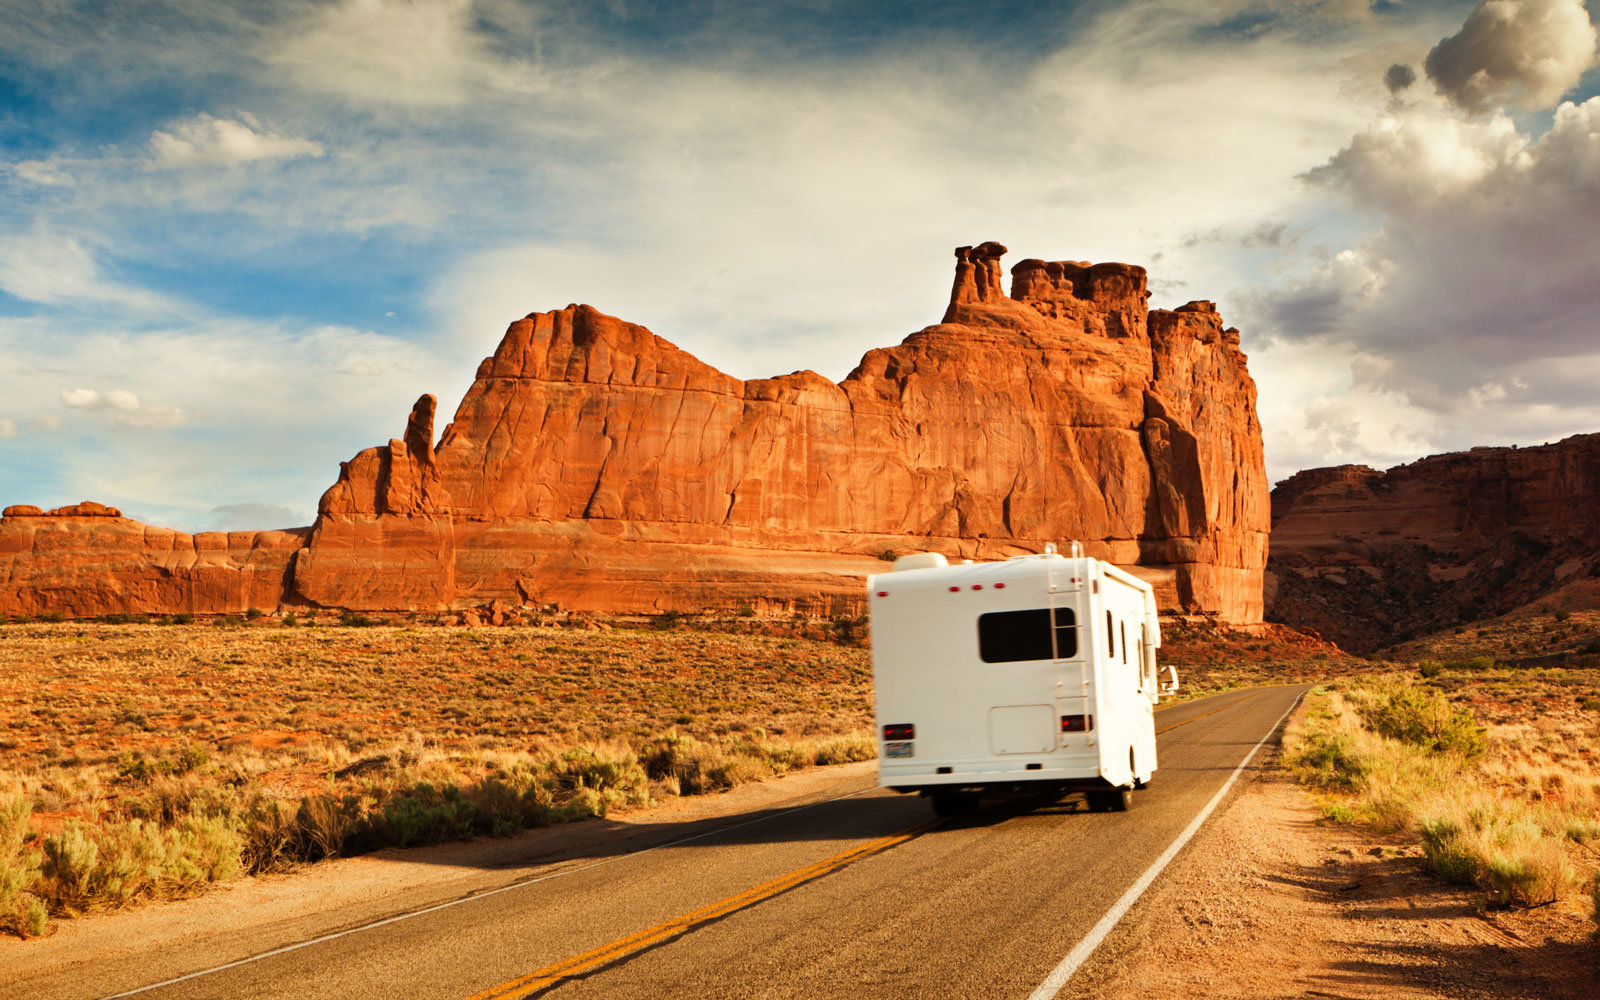 Love exploring U.S. national parks? You might want to invest in a national parks past!